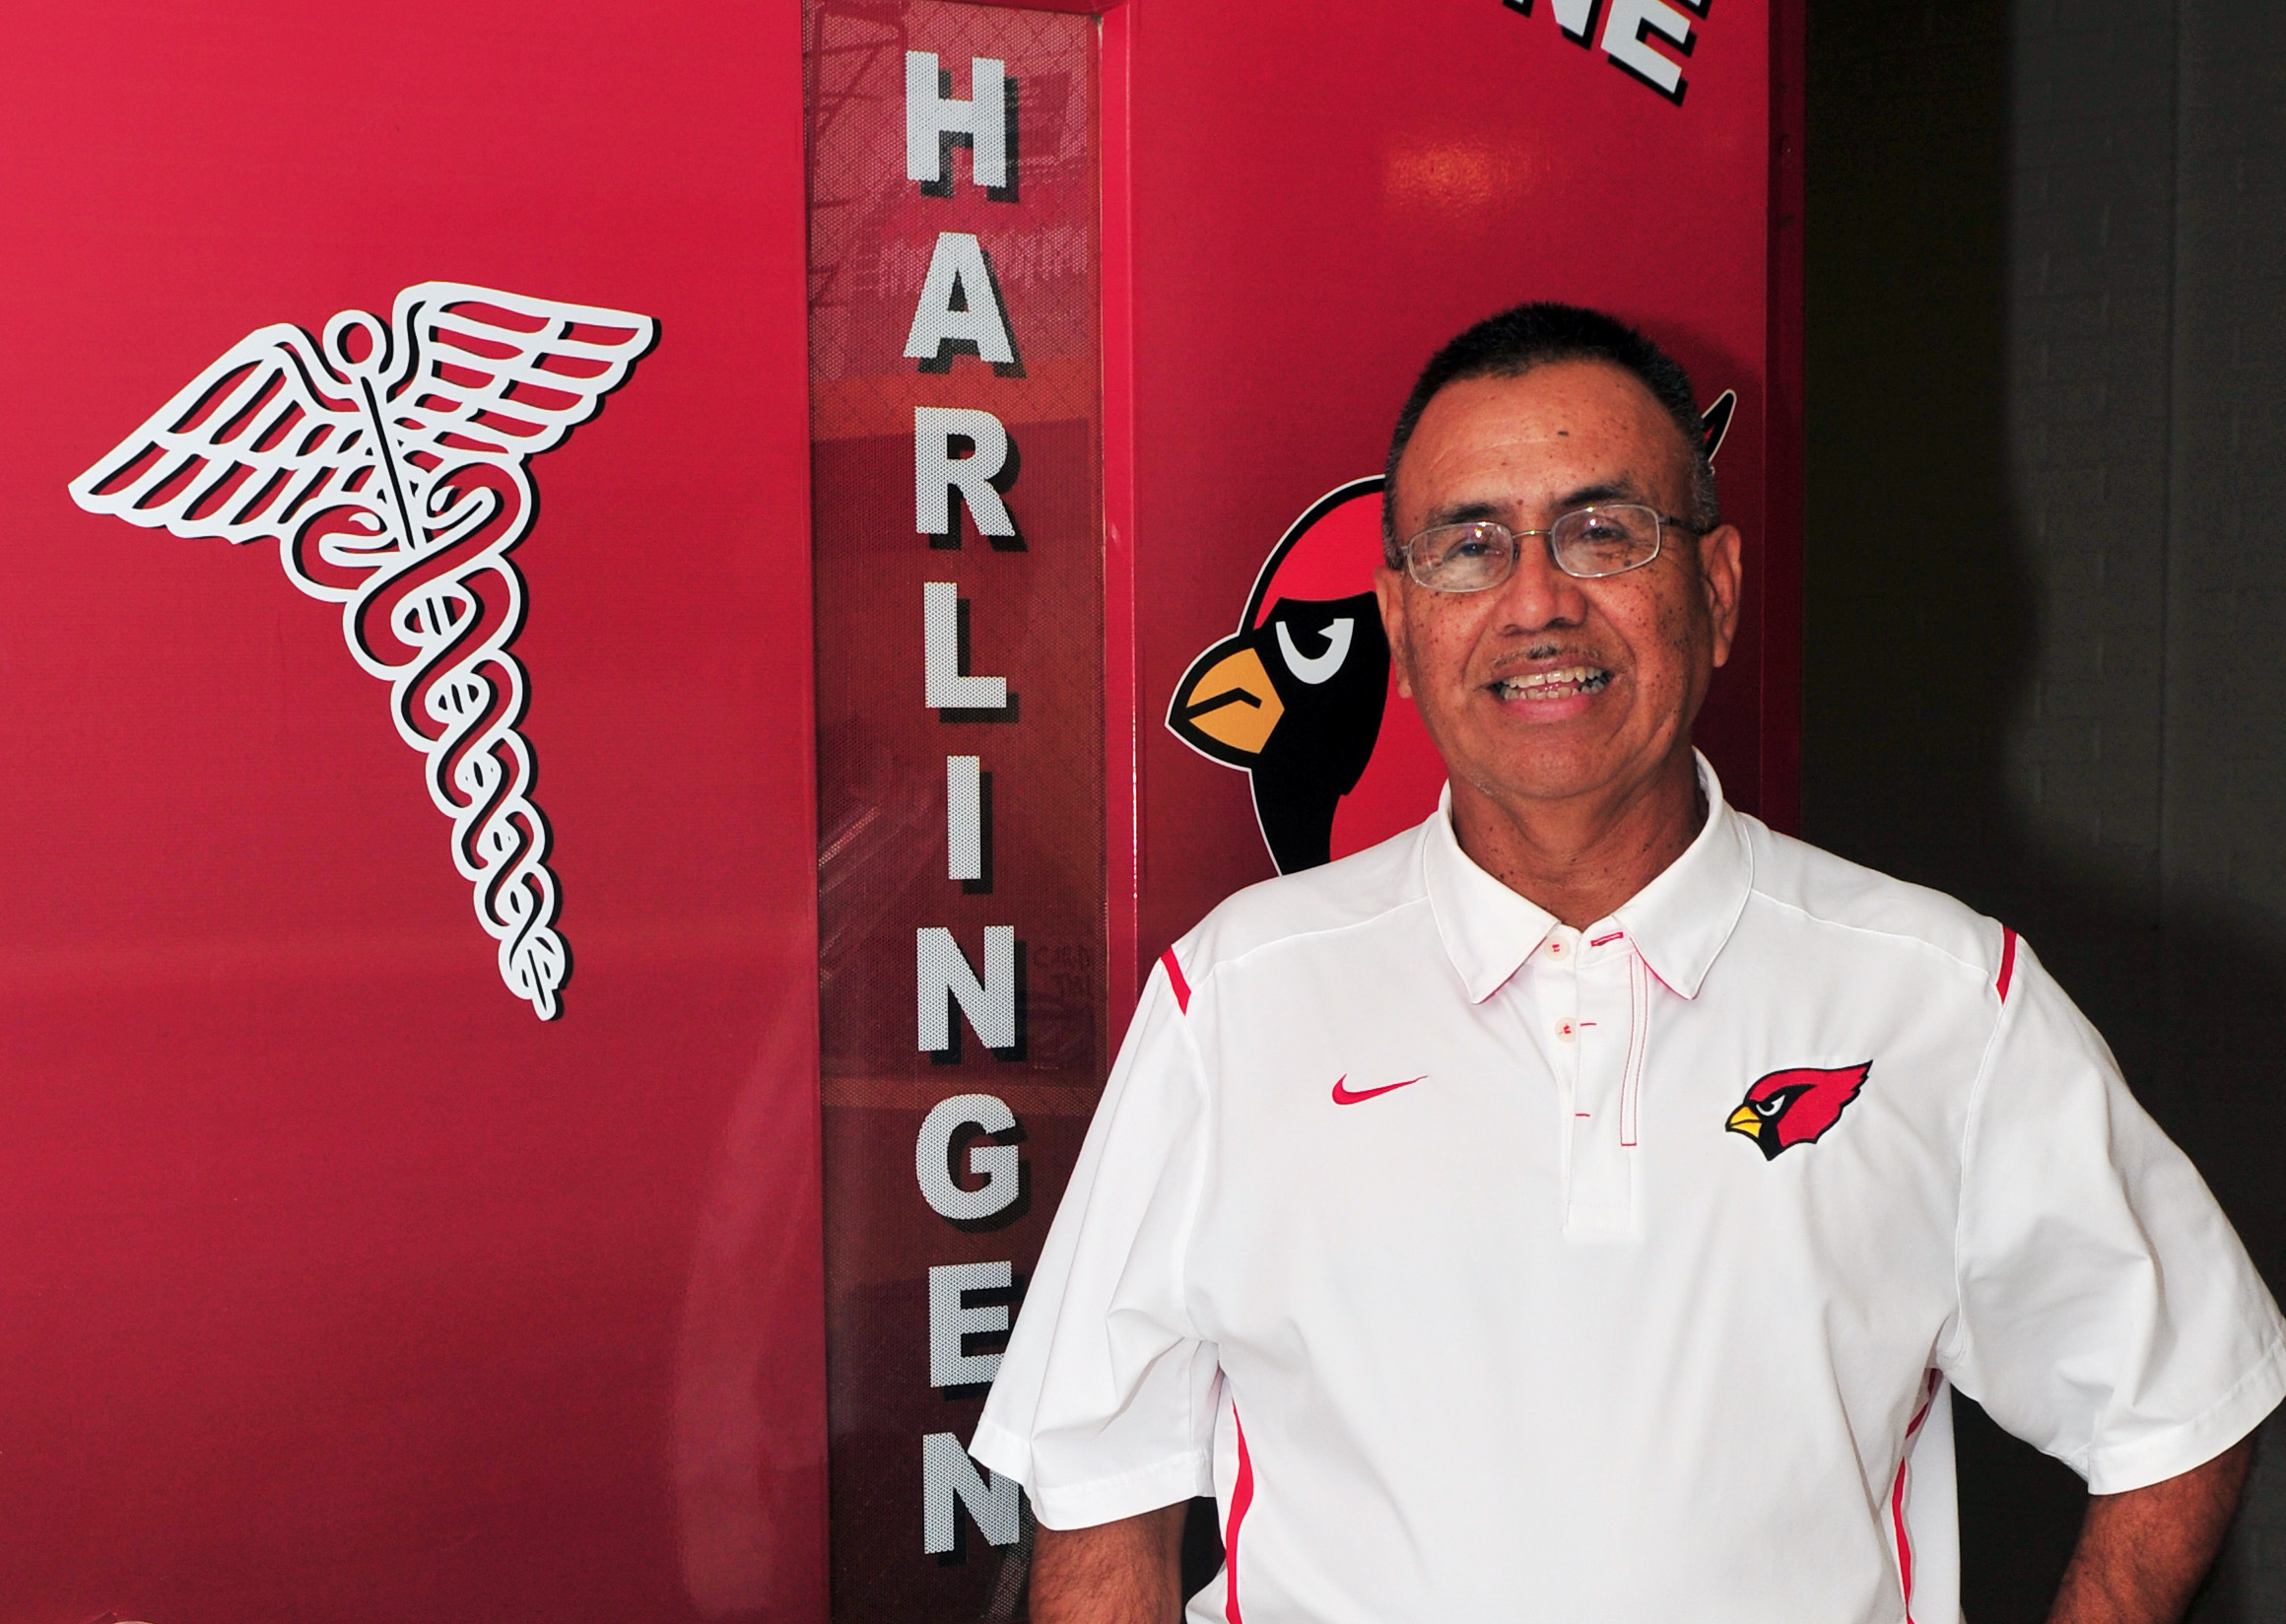 HHS trainer selected to enter Rio Grande Valley Sports Hall of Fame